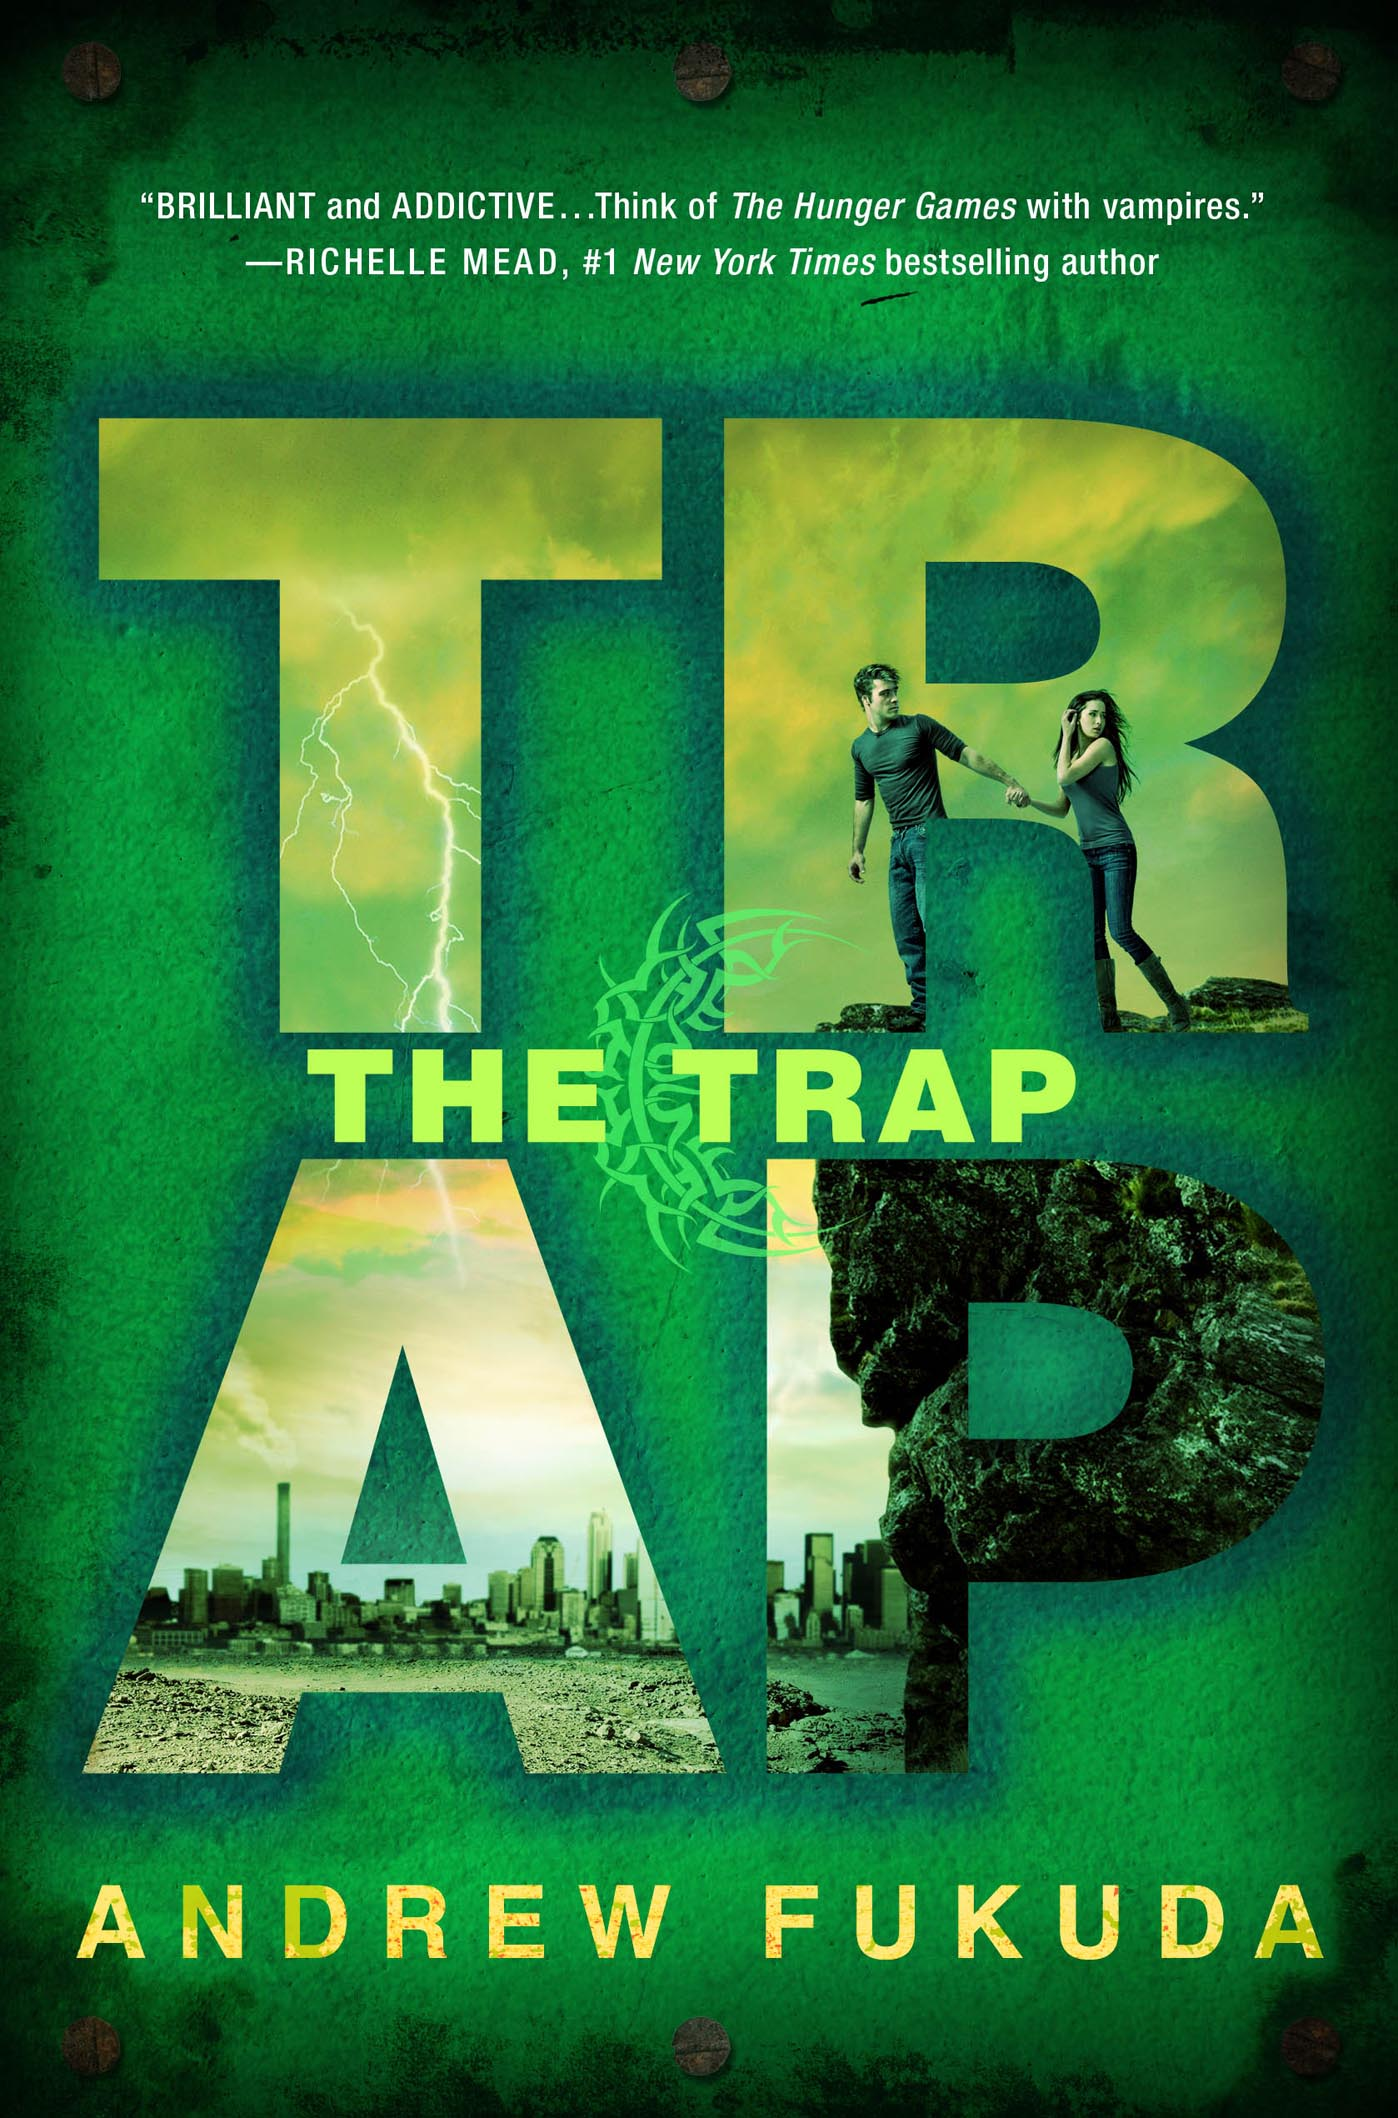 the trap by andrew fukuda at inkwell management literary agency